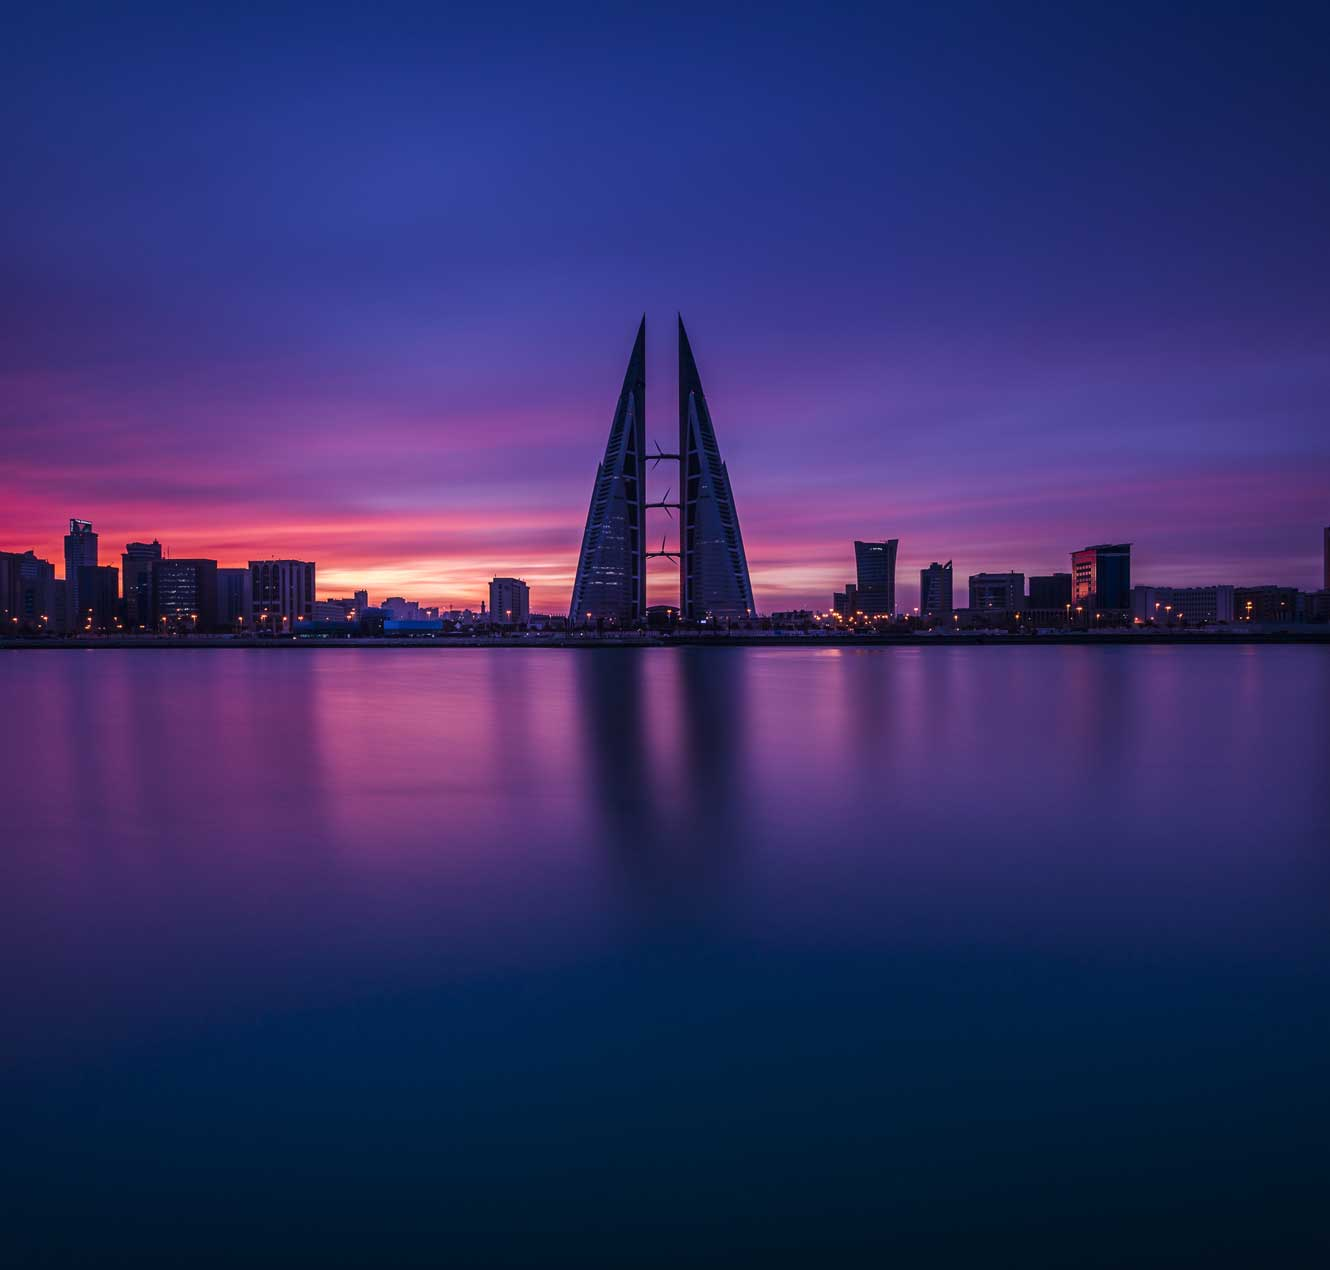 BMB Investment Bank, Bahrain selects TCS BaNCS for Treasury to drive innovation and enhance customer experience